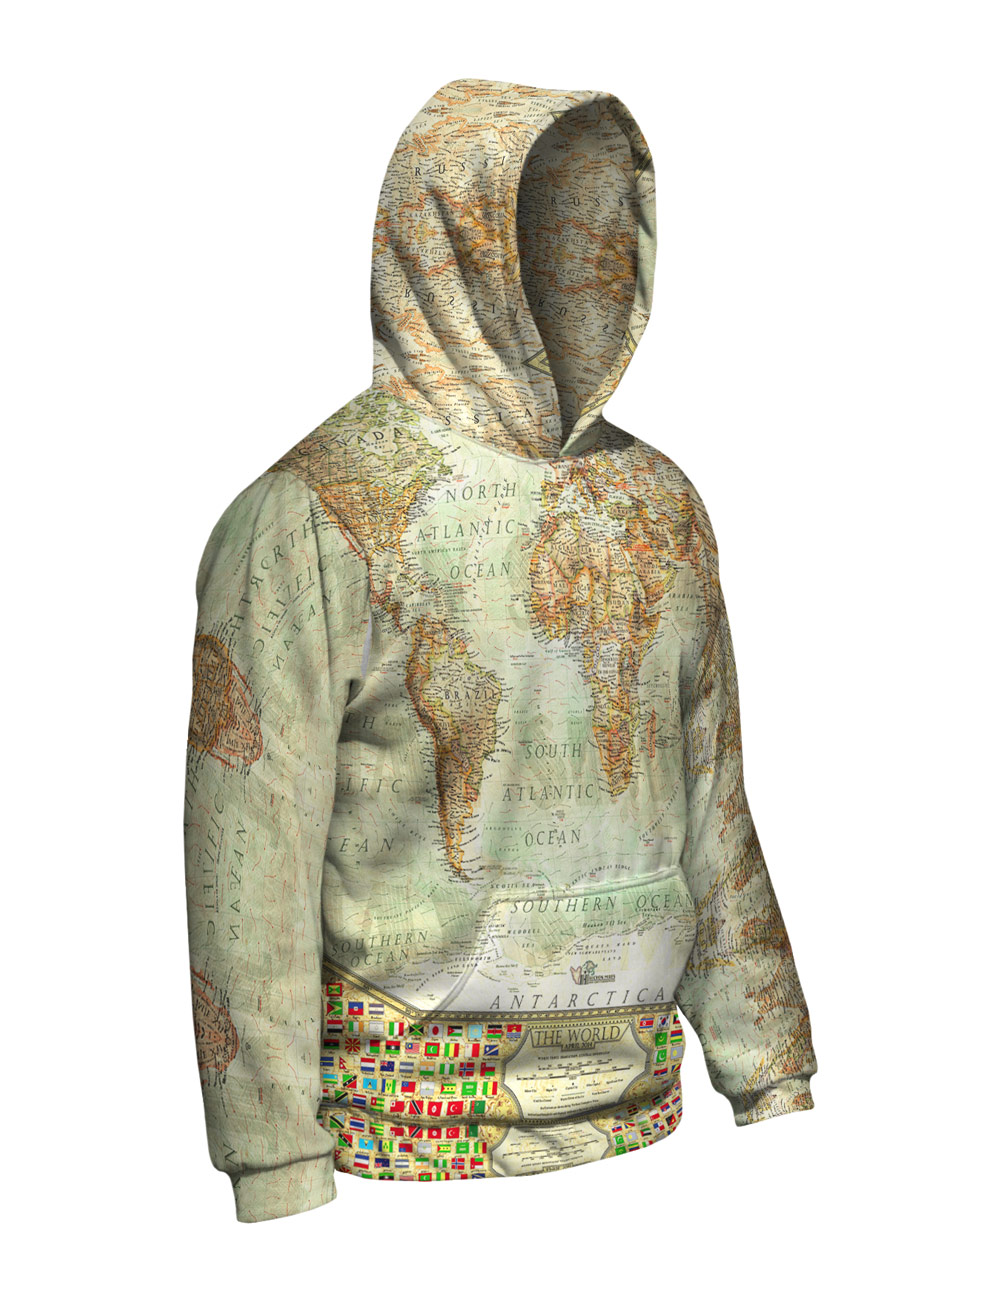 Yizzam ash world map new mens hoodie sweater xs s m l xl 2xl 3xl yizzam ash world map new mens hoodie sweater gumiabroncs Images